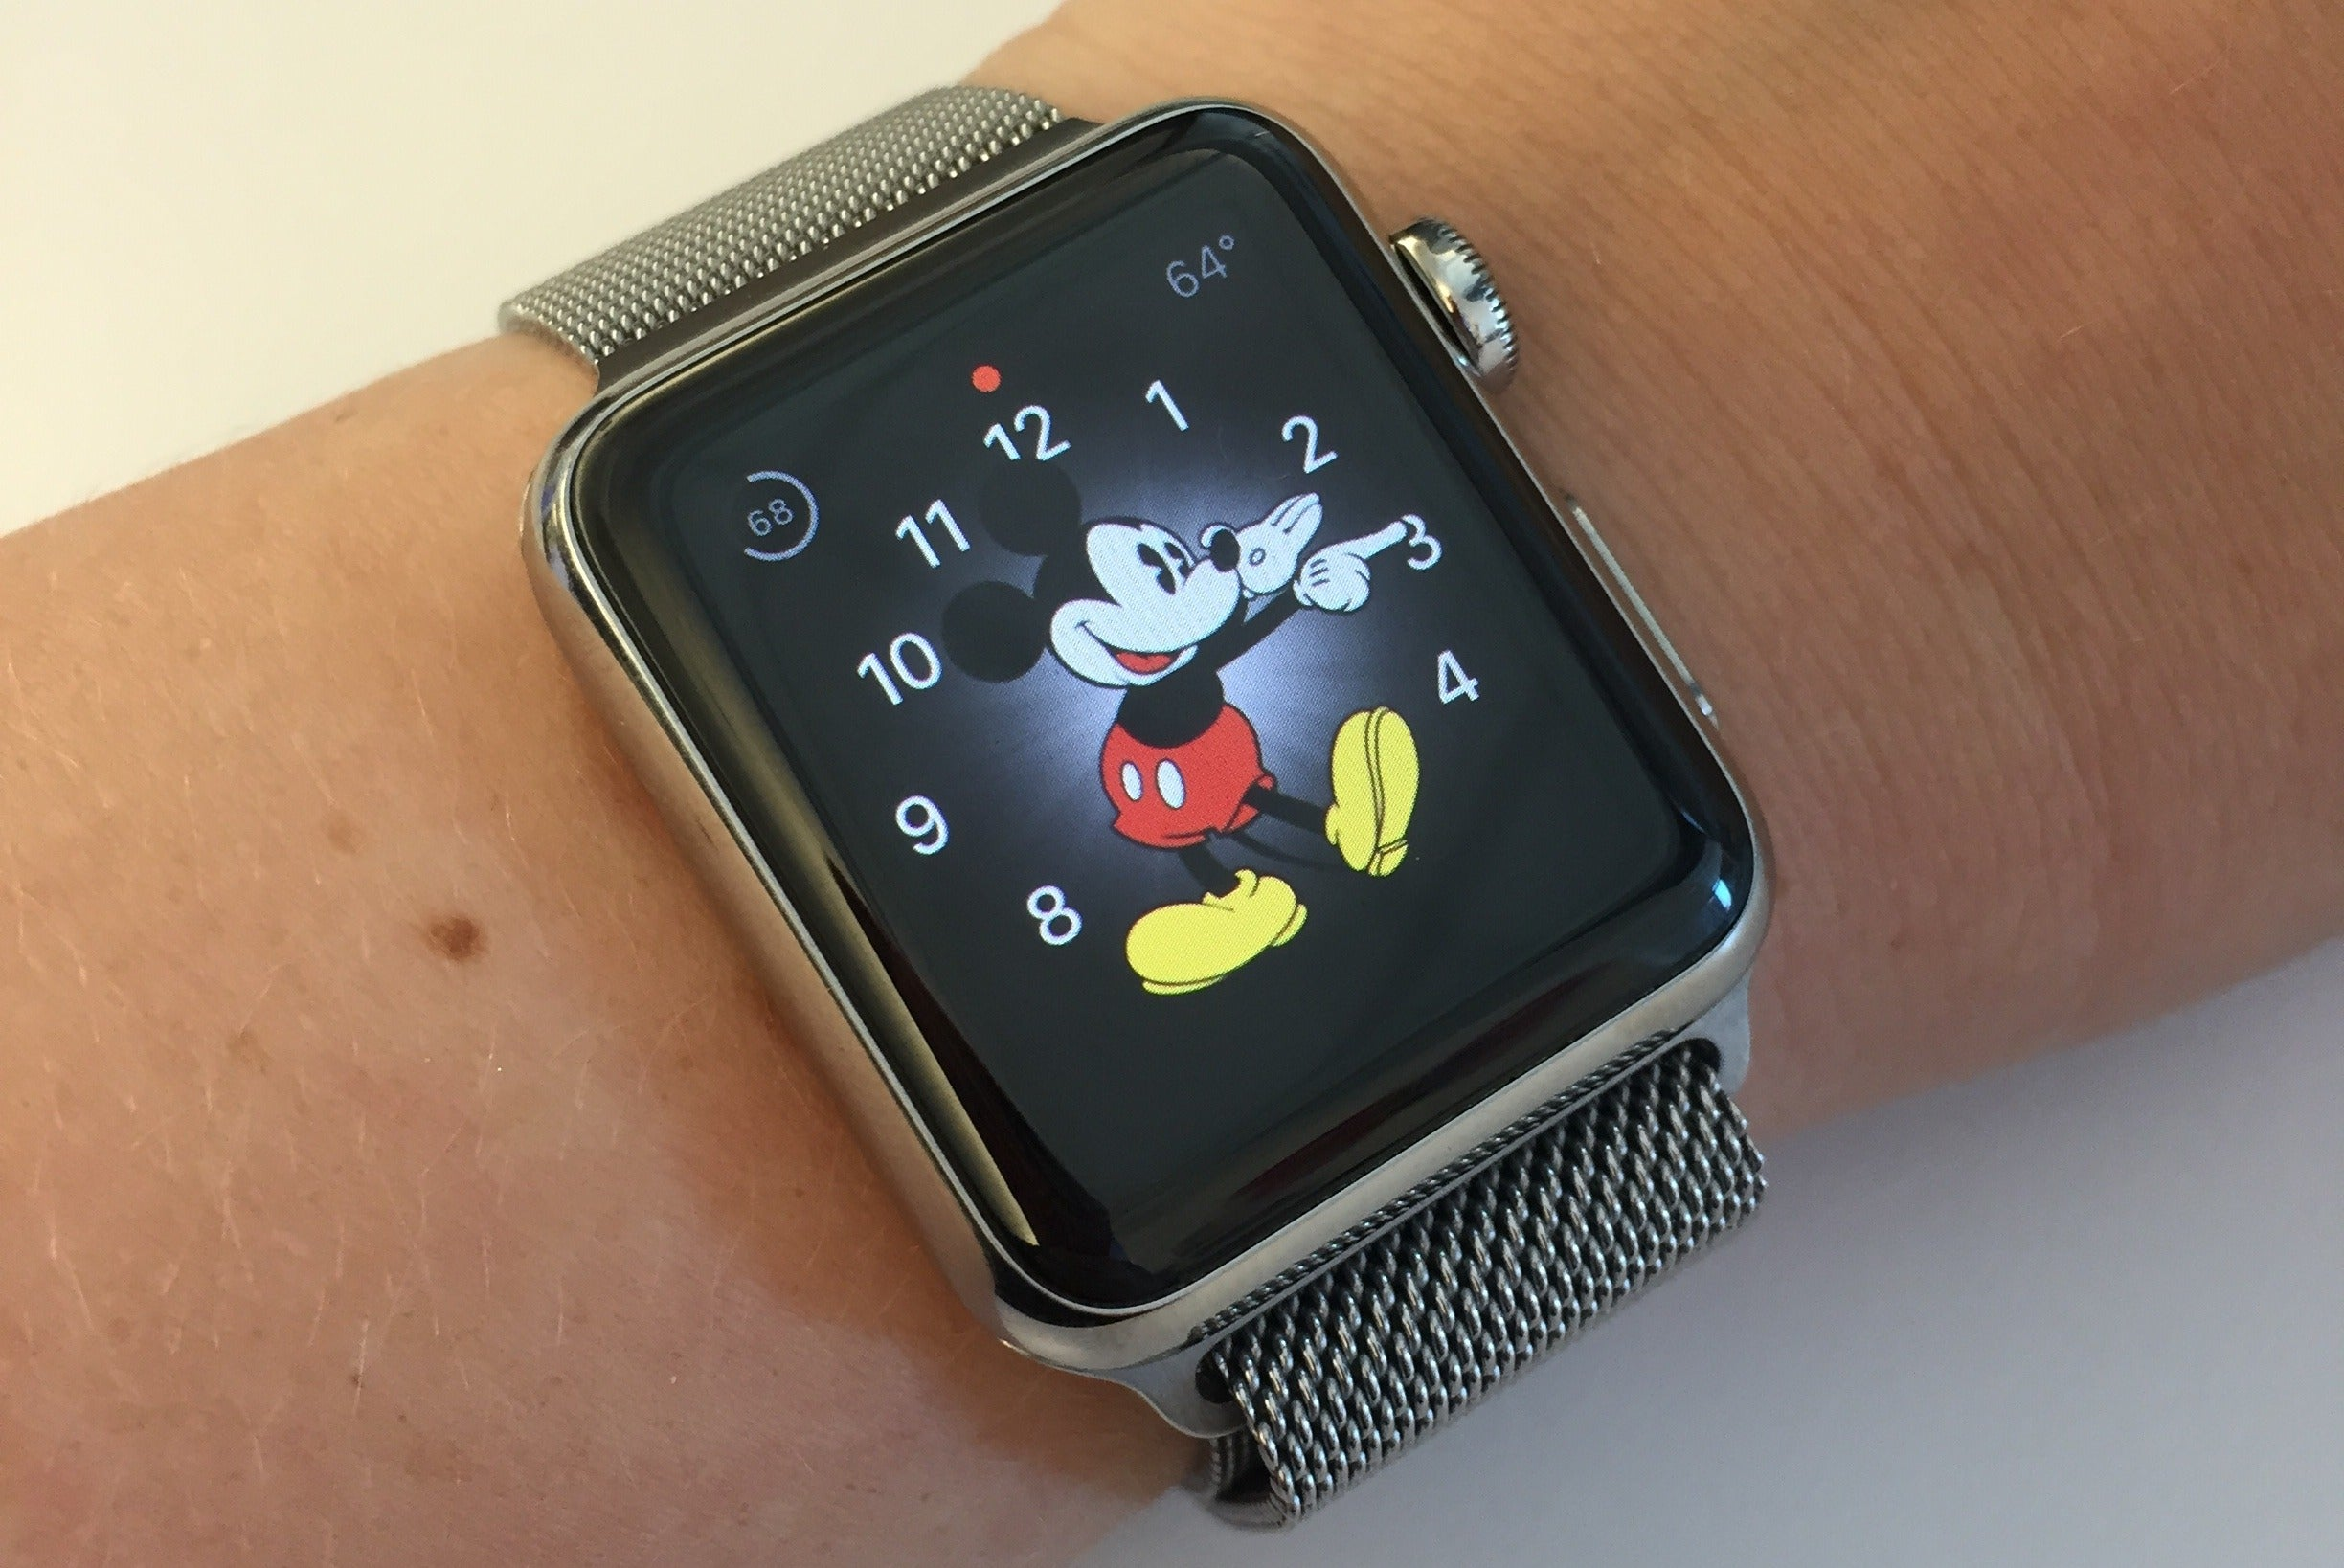 orig apple macworld the picks ways favorite use watch staff our to article i watches mickey phone mouse